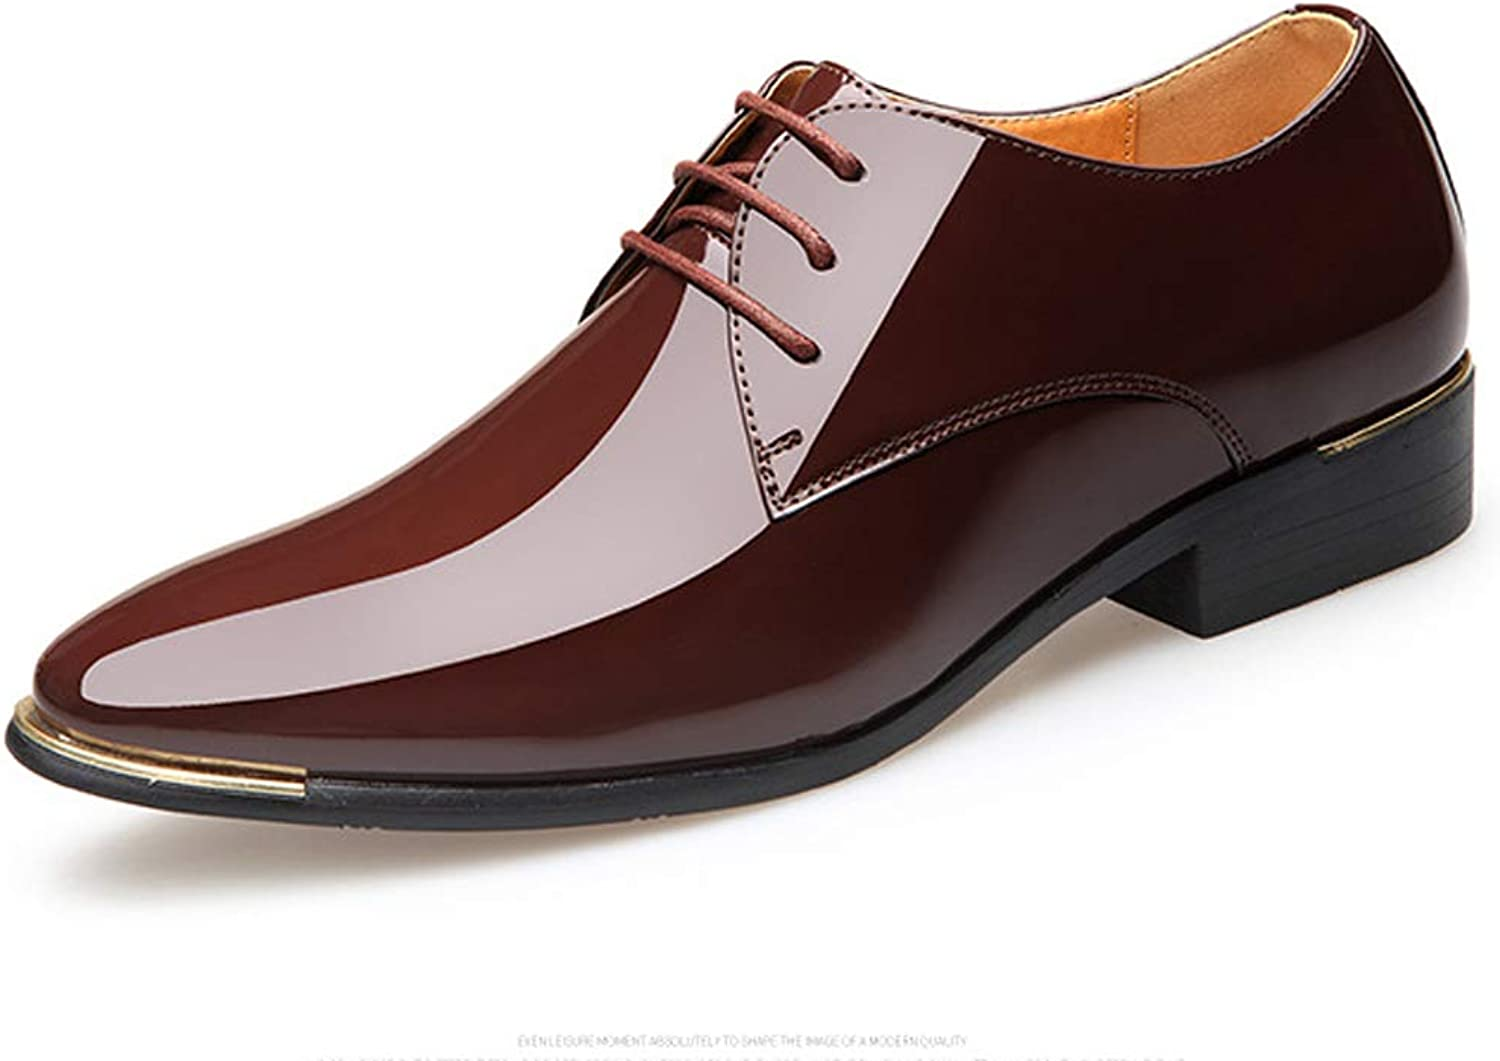 TAZAN Spring and autumn new men's pointed patent leather business dress shoes England large size tie casual shoes low dress party wedding shoes breathable wear